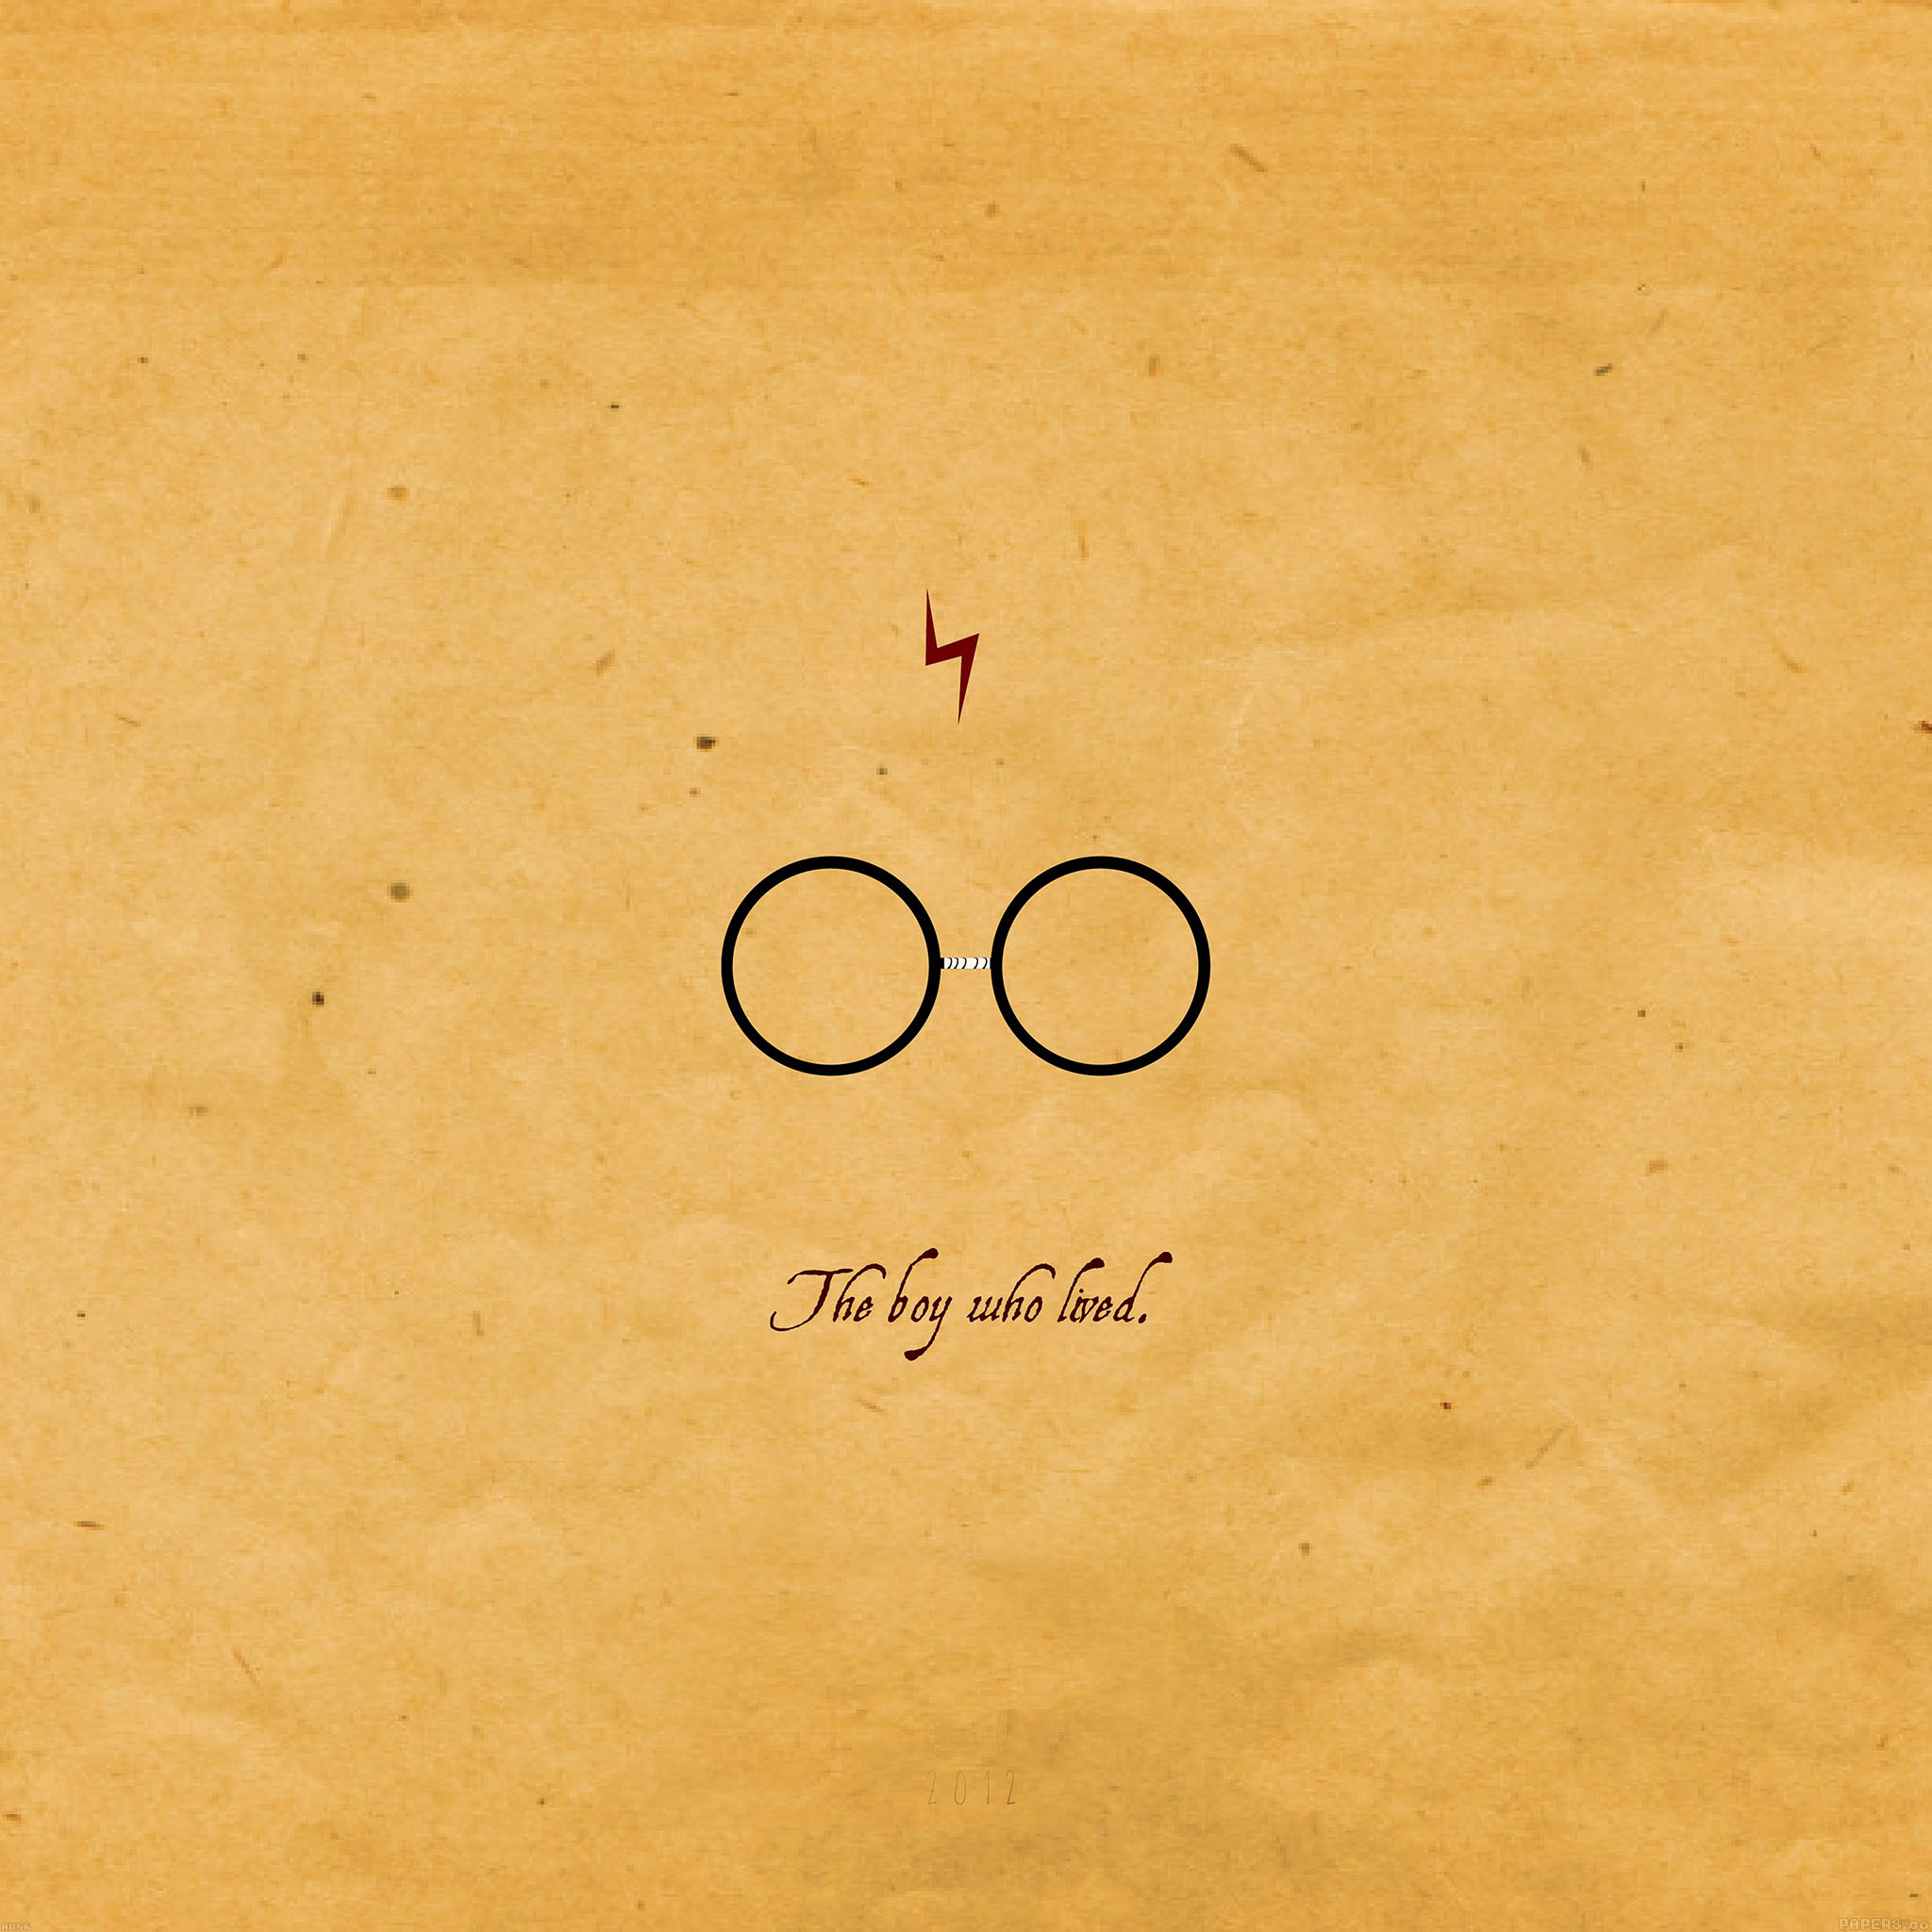 Most Inspiring Wallpaper Harry Potter Ipad - papers  Graphic_619510.jpg